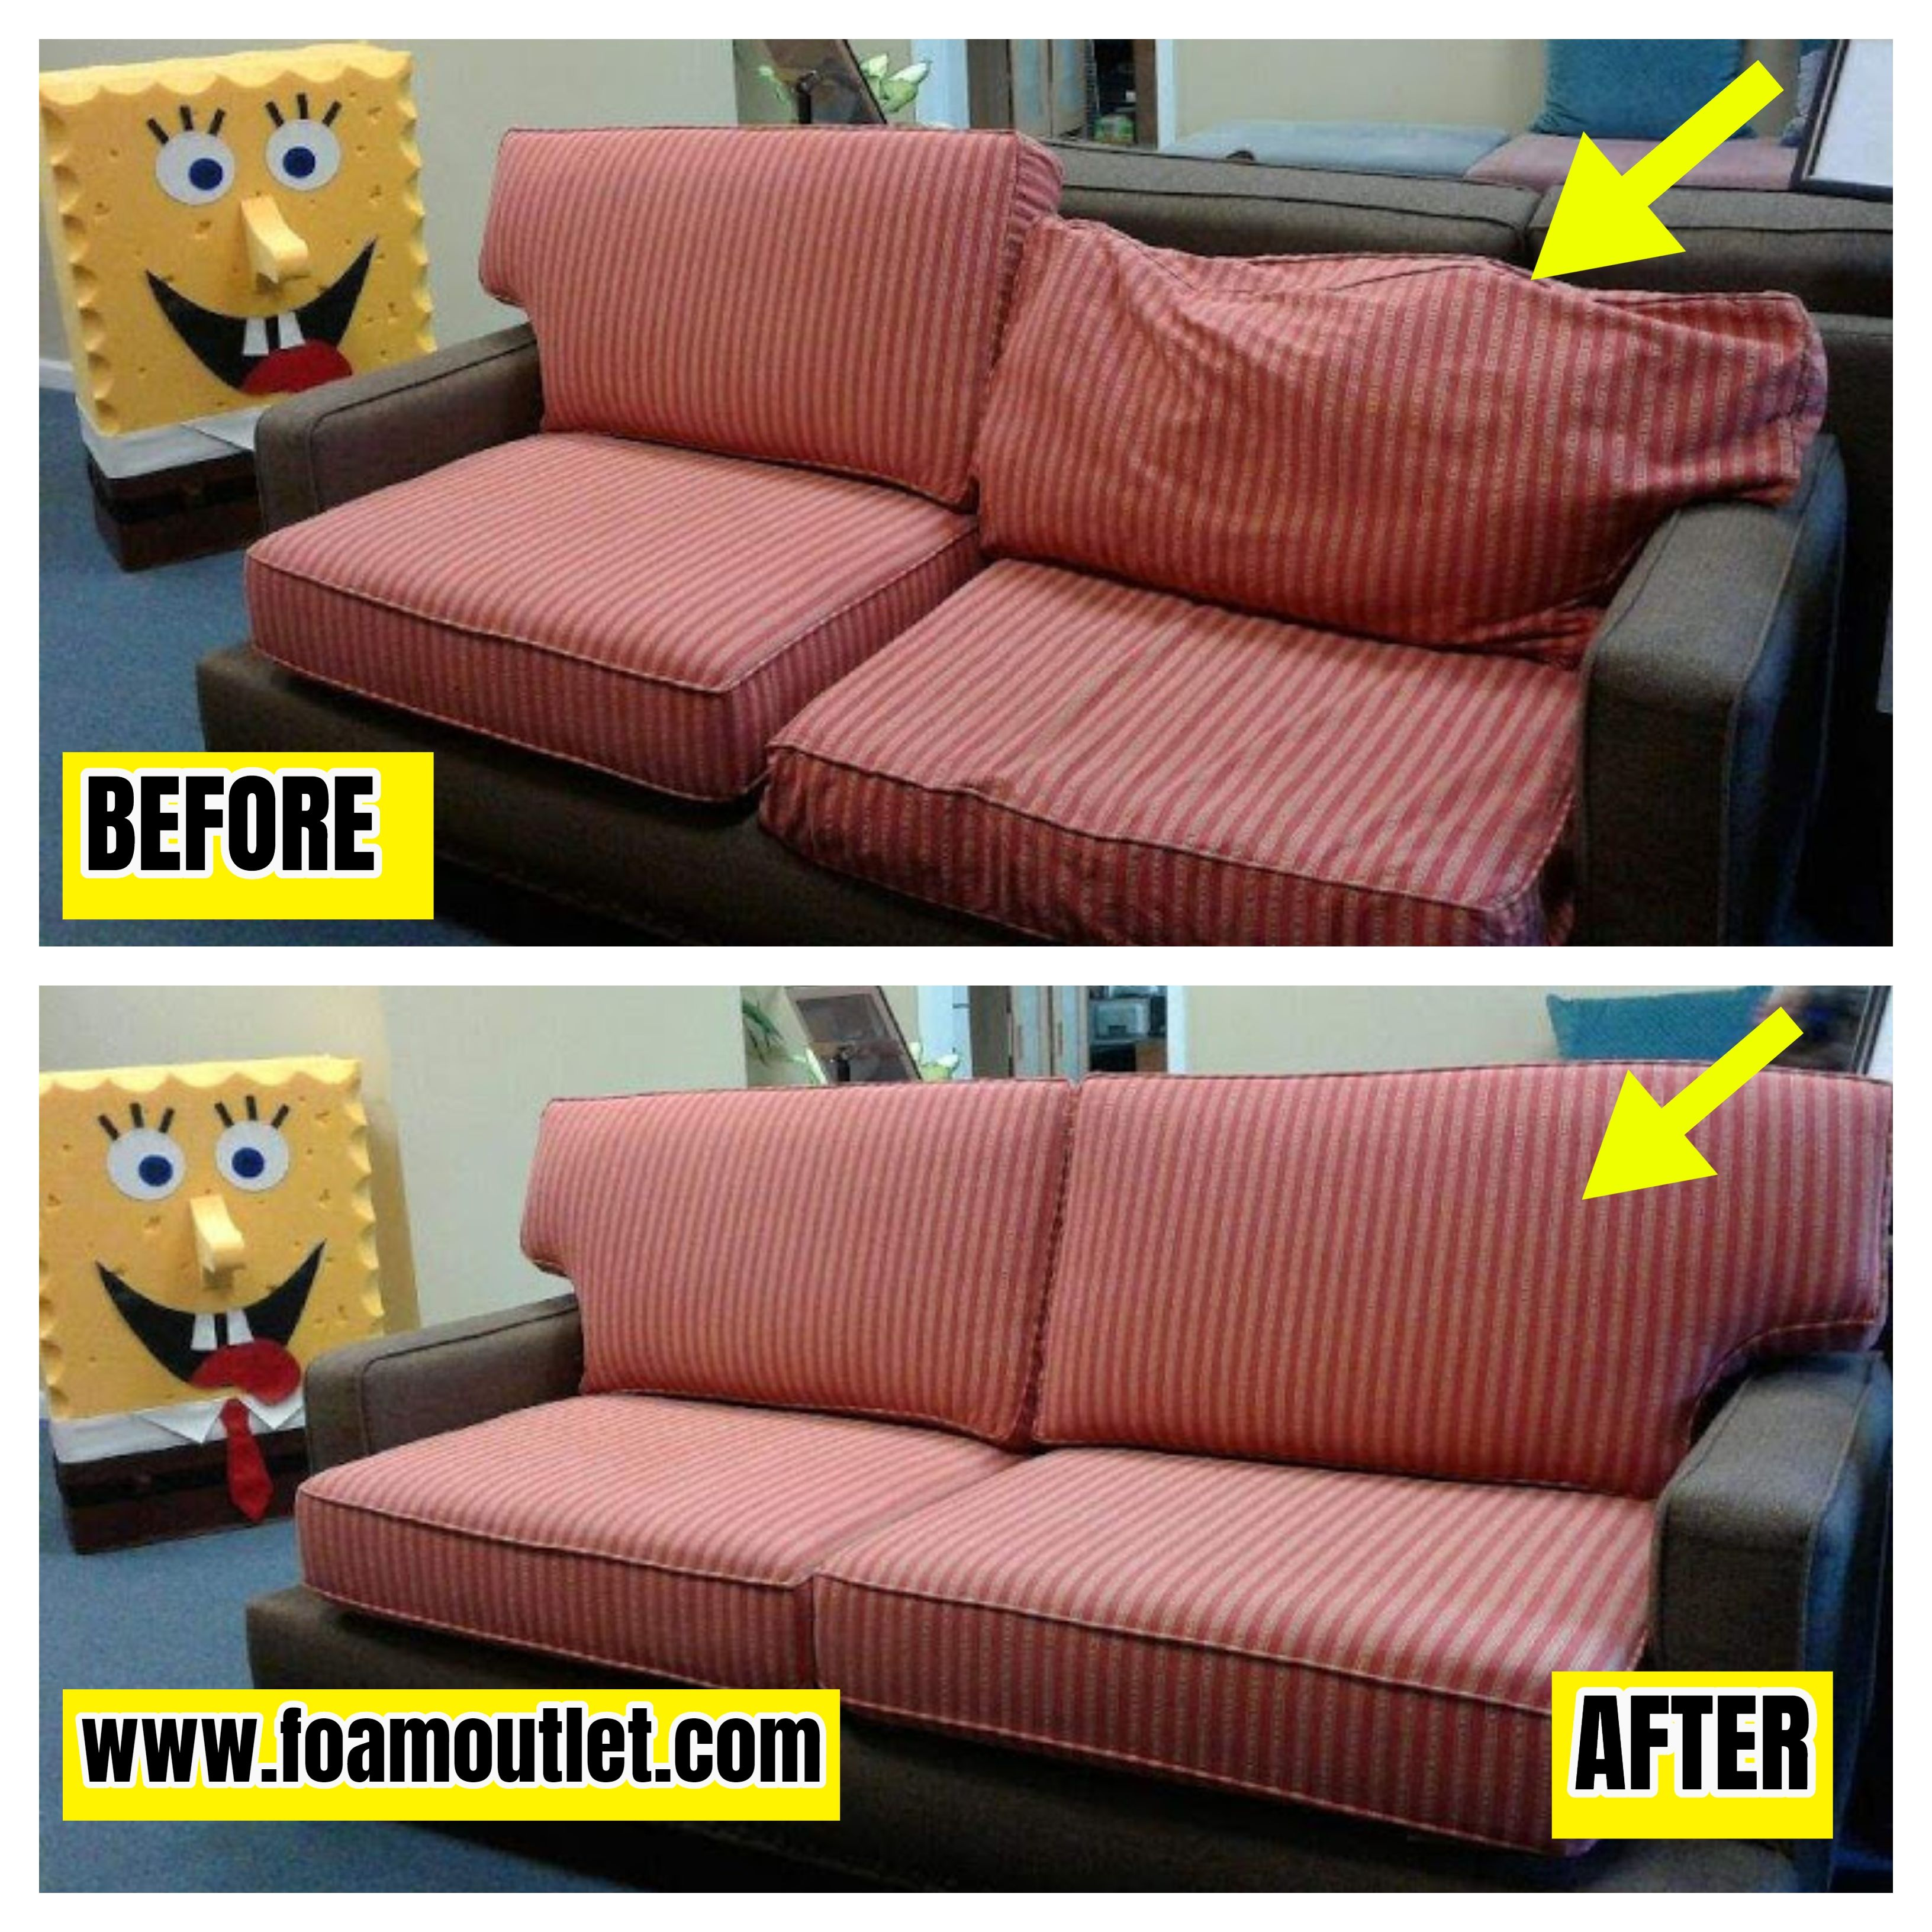 Love Seat Rescue Our High Density Foam Replacementcushions Brought A Sagging Unsupportive Couch Back T In 2020 Cushions On Sofa Couch Cushions Couch Cushion Foam